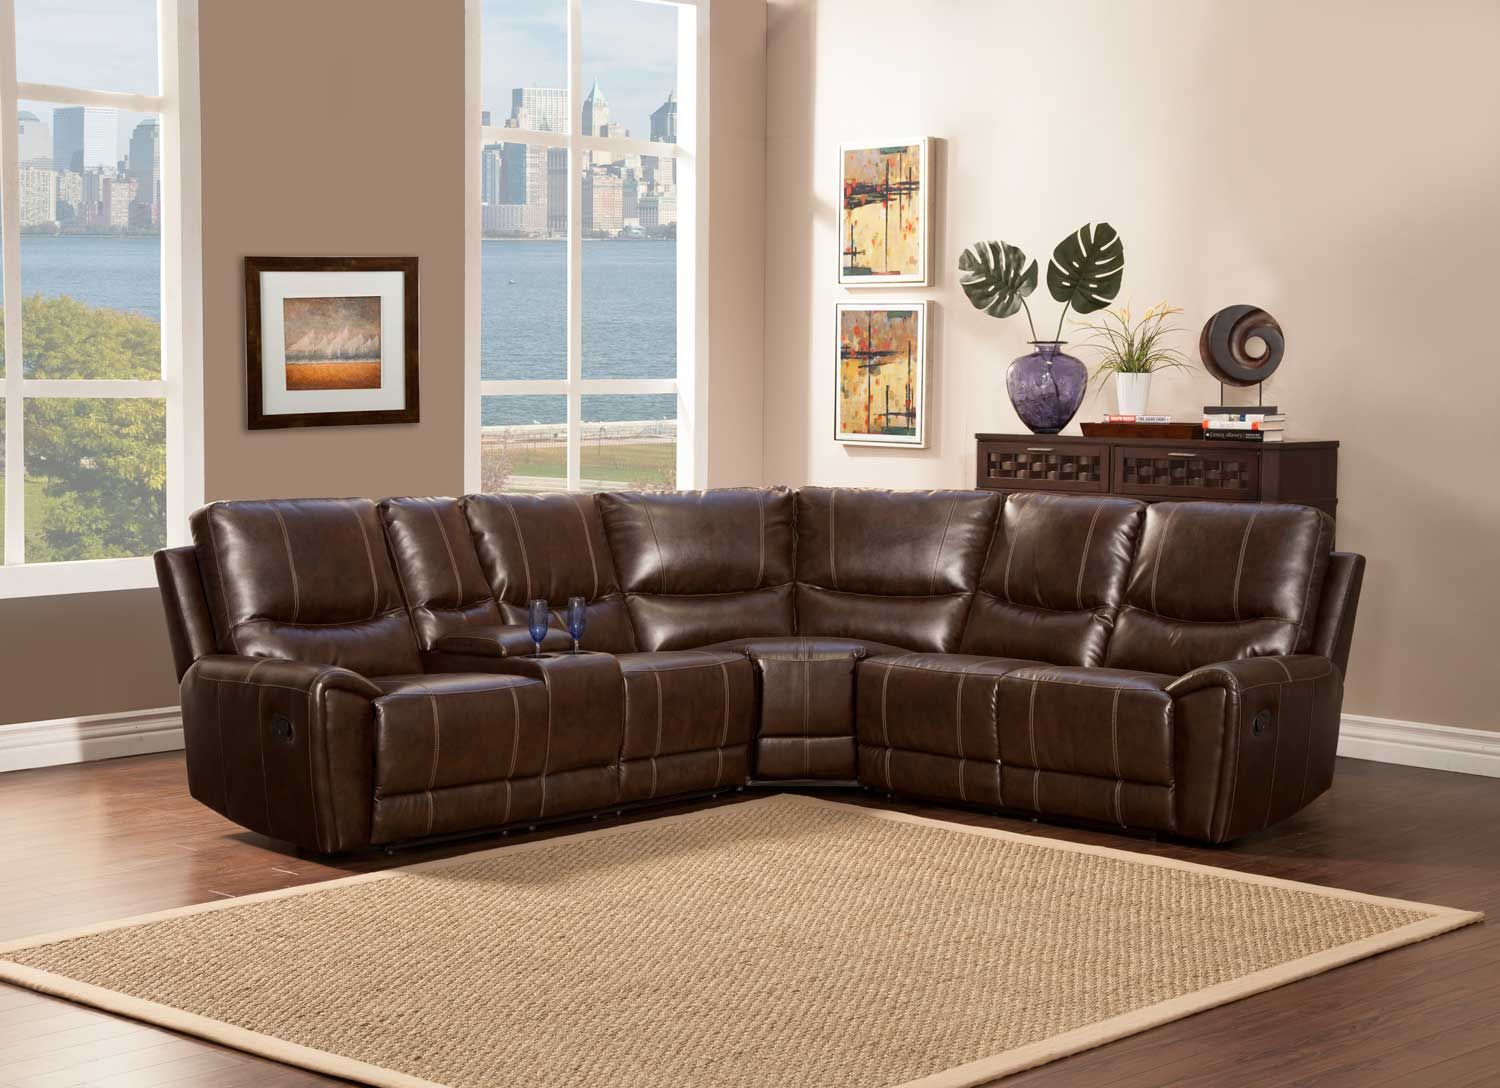 Gerald 4Pc Sectional Set   Sectional   Dallas Tx Furniture With 4Pc Beckett Contemporary Sectional Sofas And Ottoman Sets (View 7 of 15)